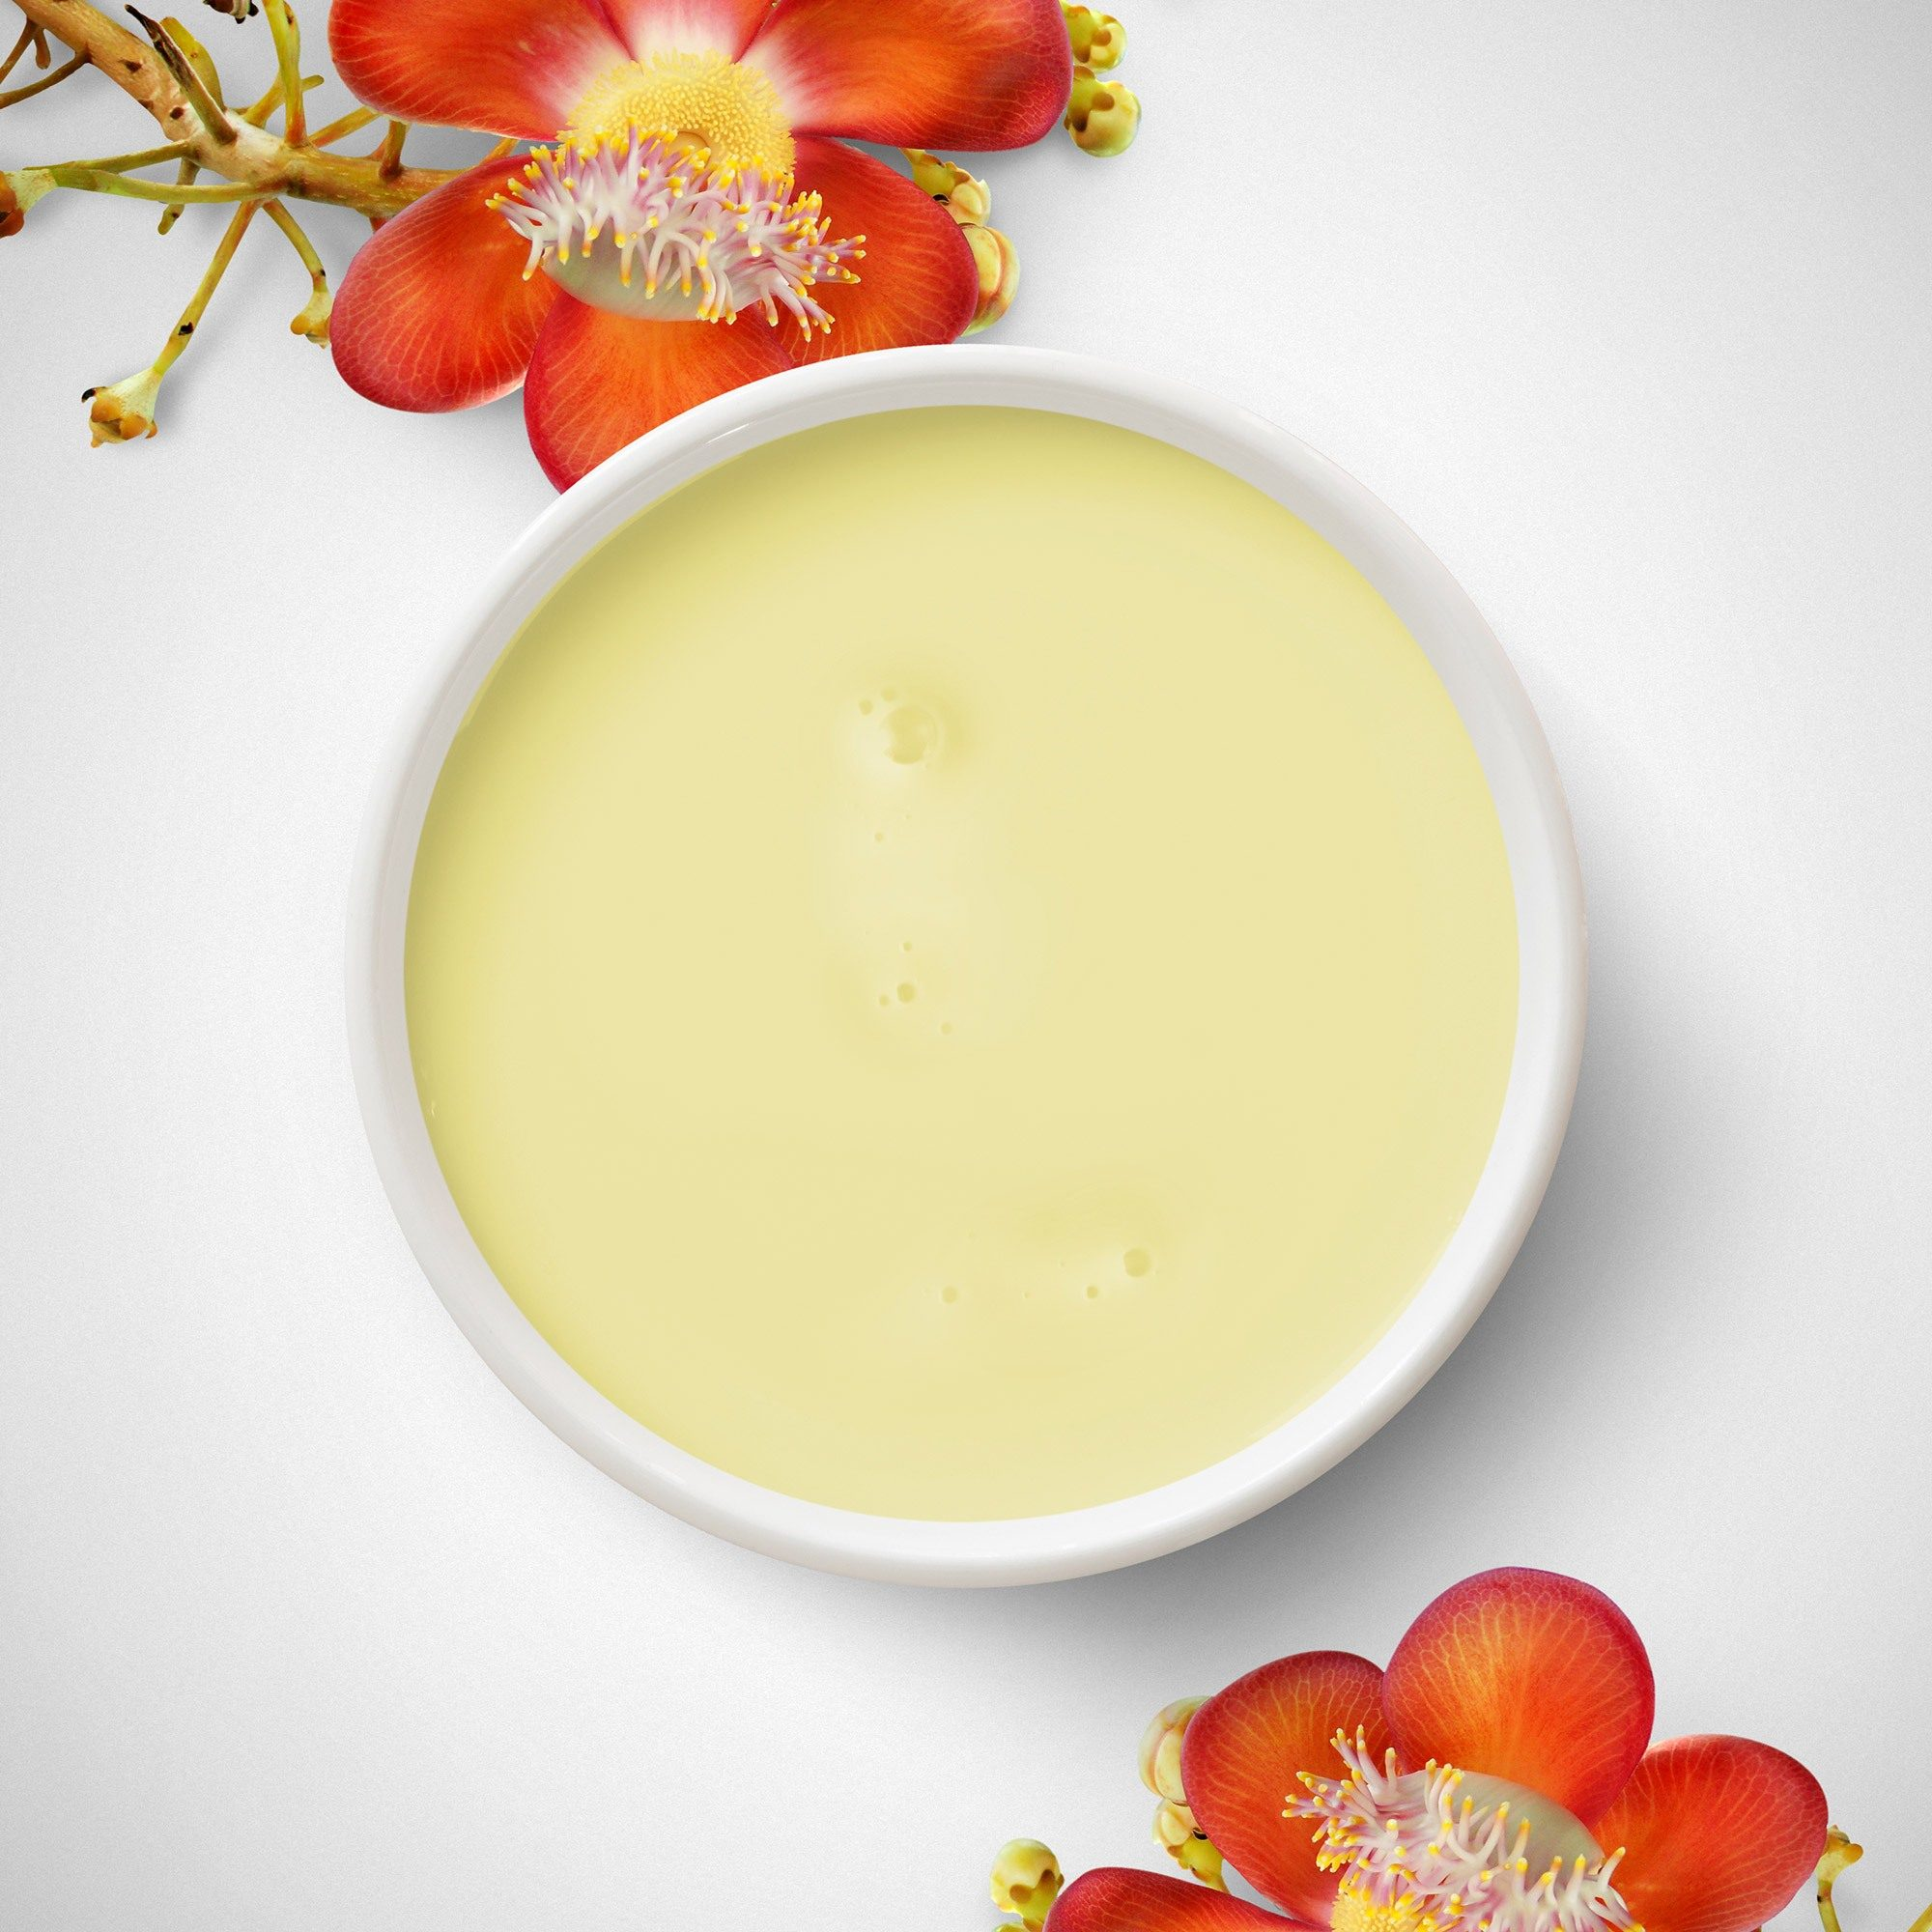 A yellowish substance in a small bowl, decorated with red flowers.